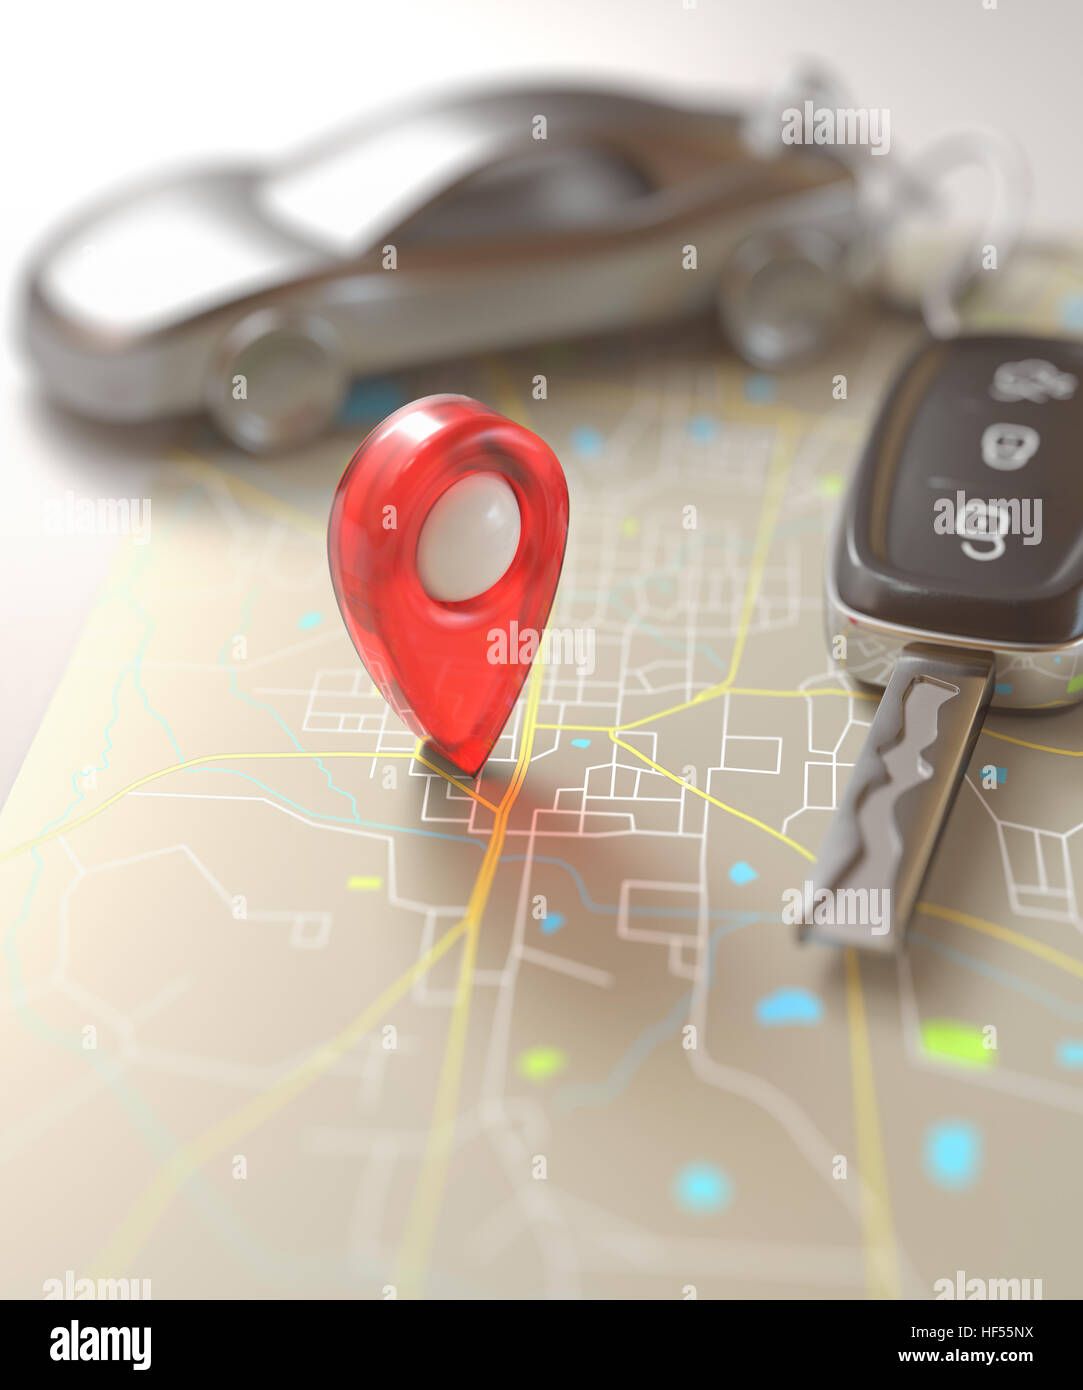 Car key on the map with local points of travel. - Stock Image